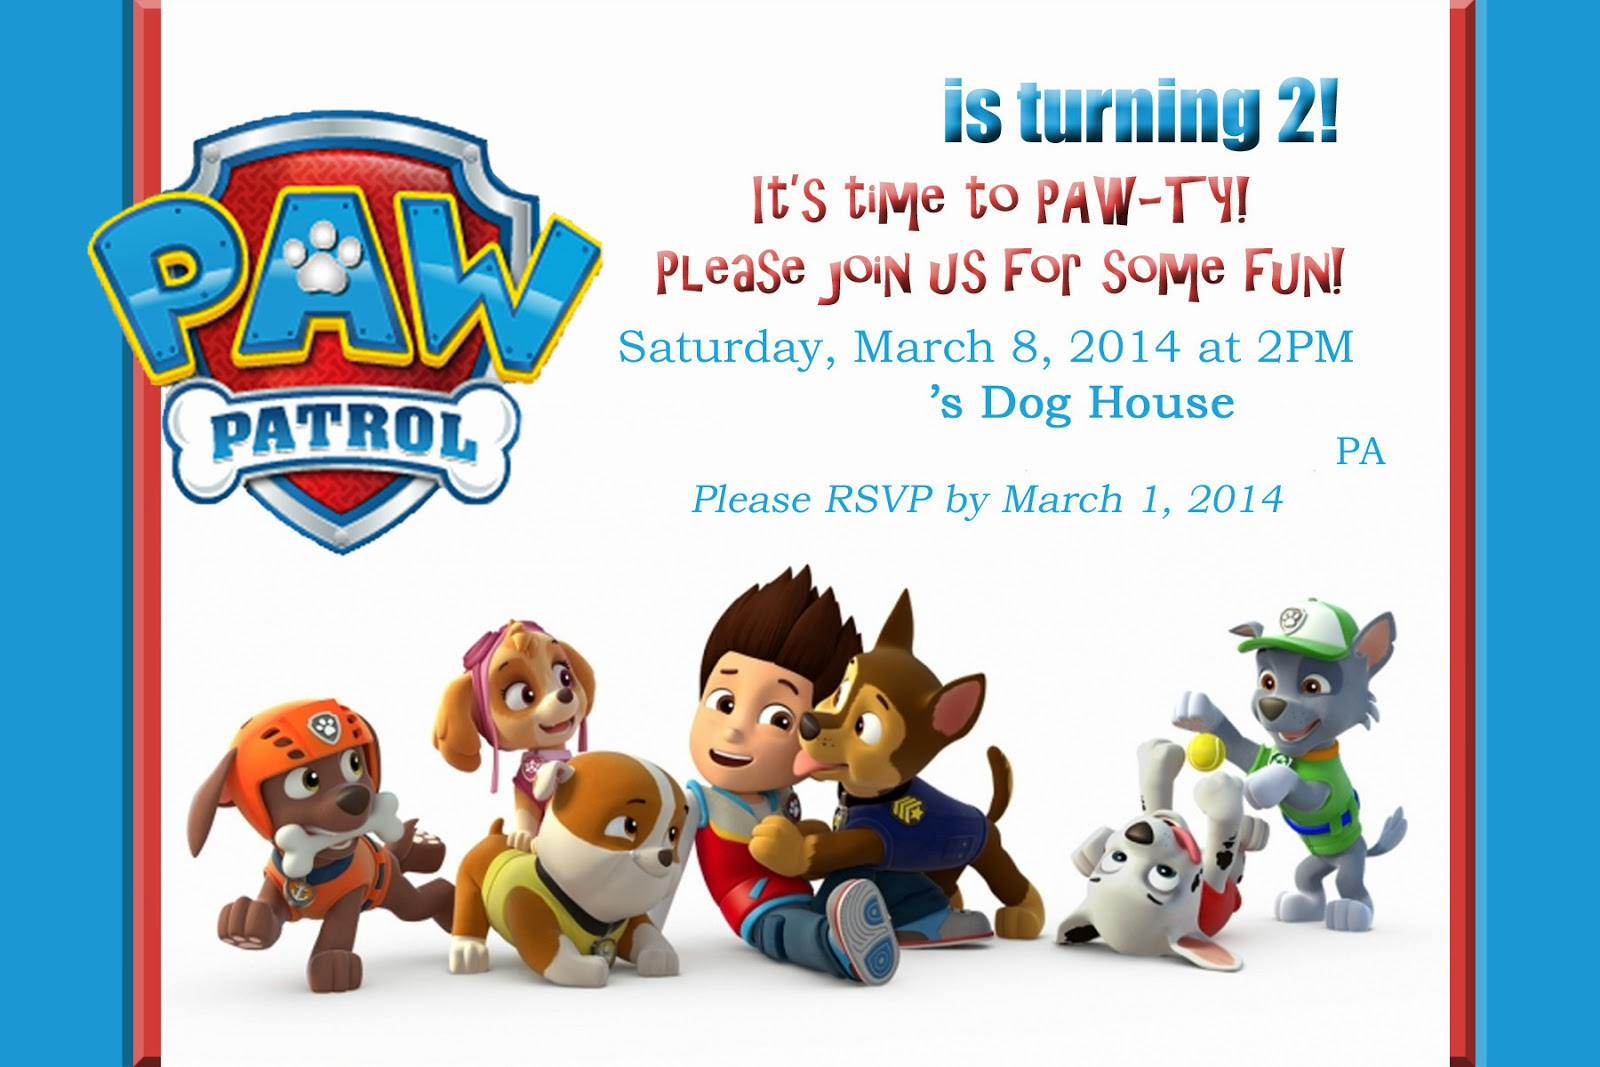 Mom's Tot School PAW Patrol Puppy Party!